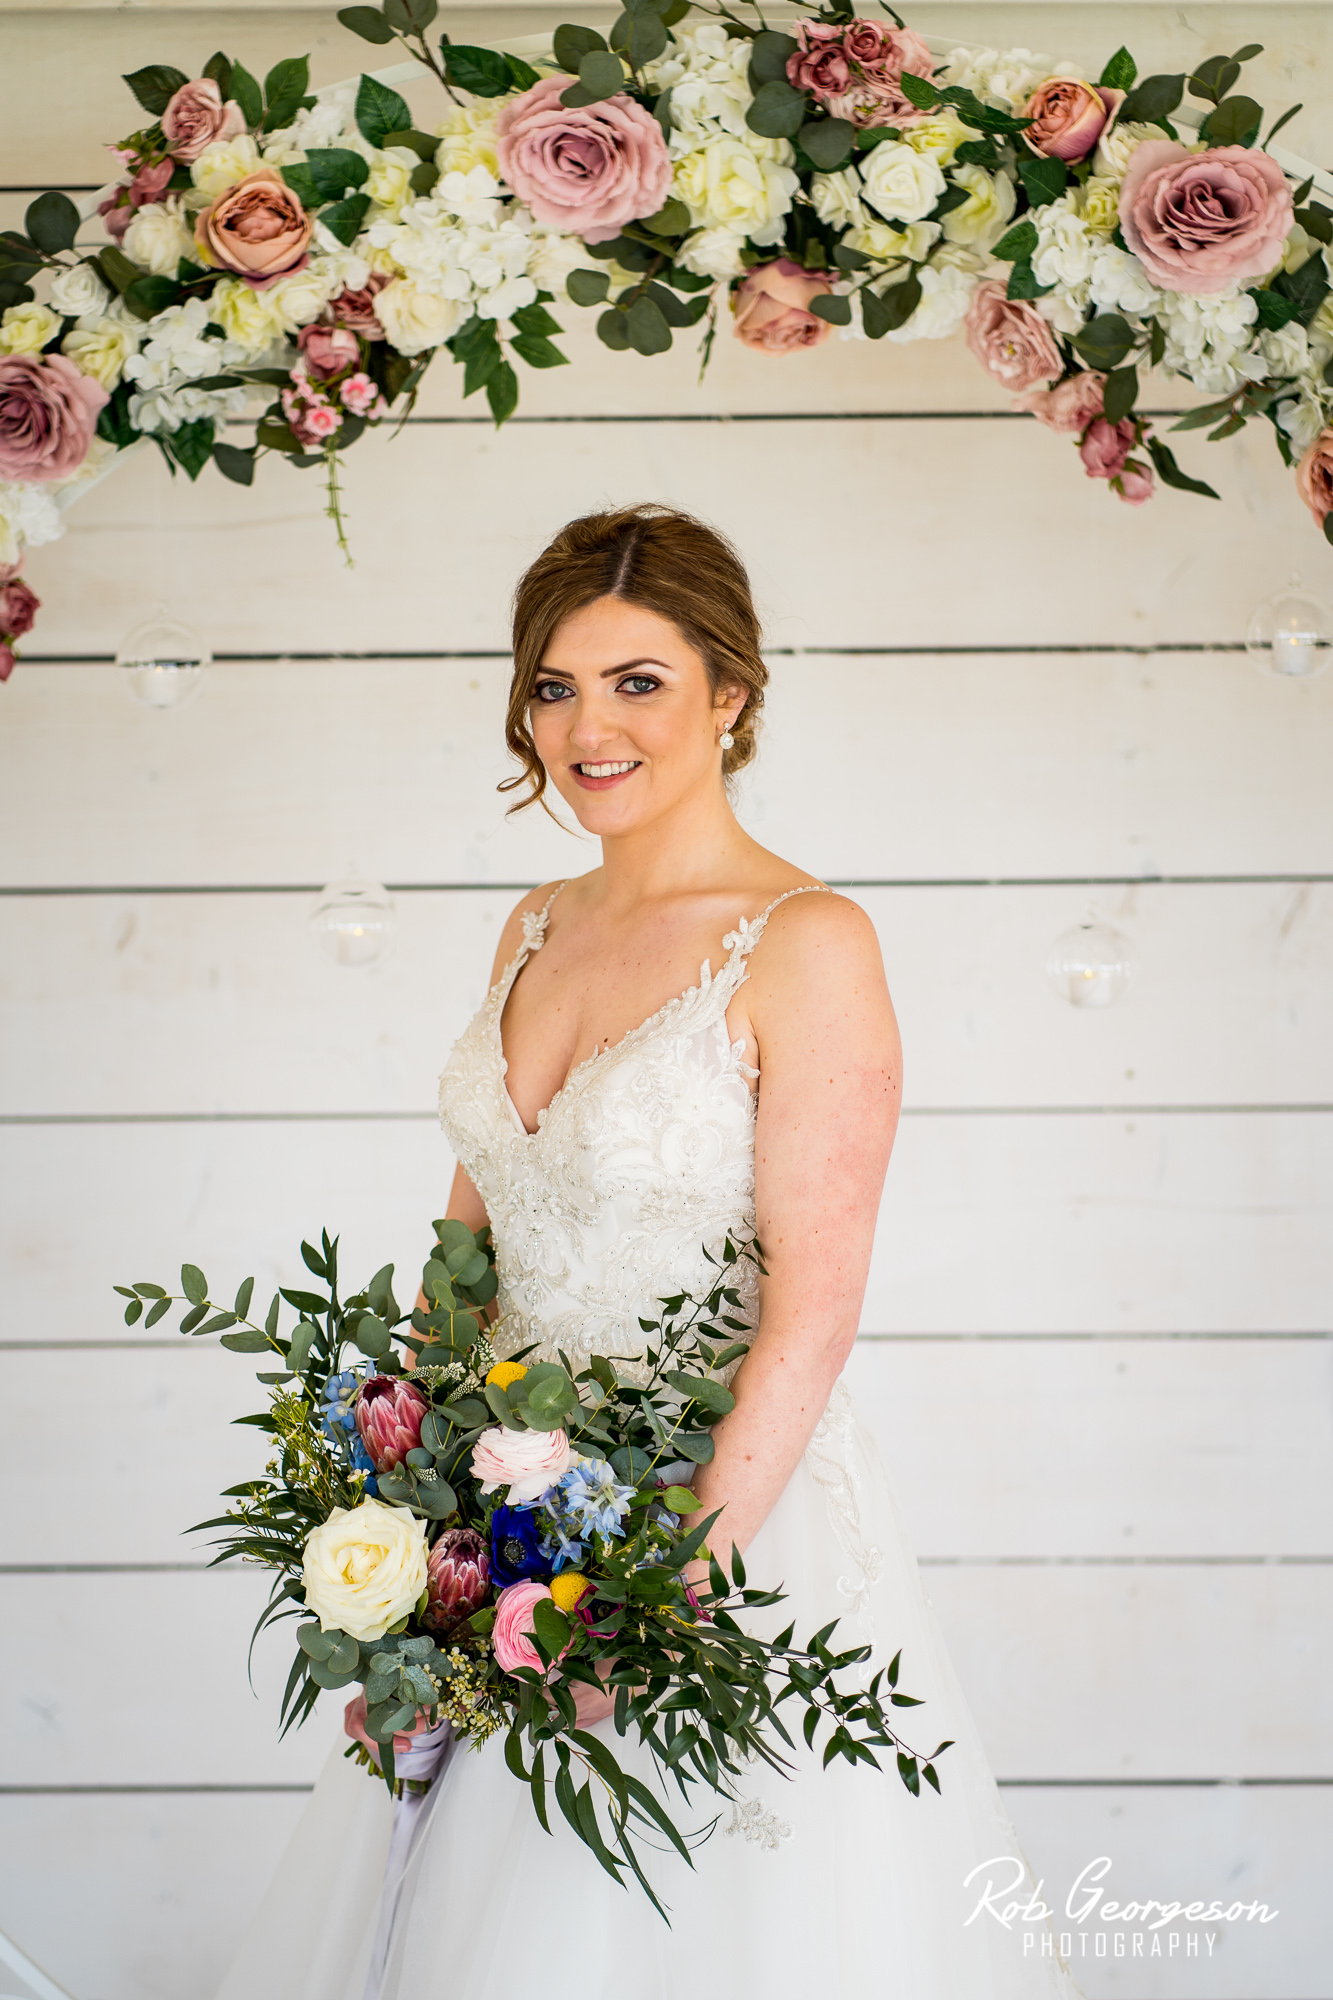 wedding at Bashall barn with a flower wall and bride